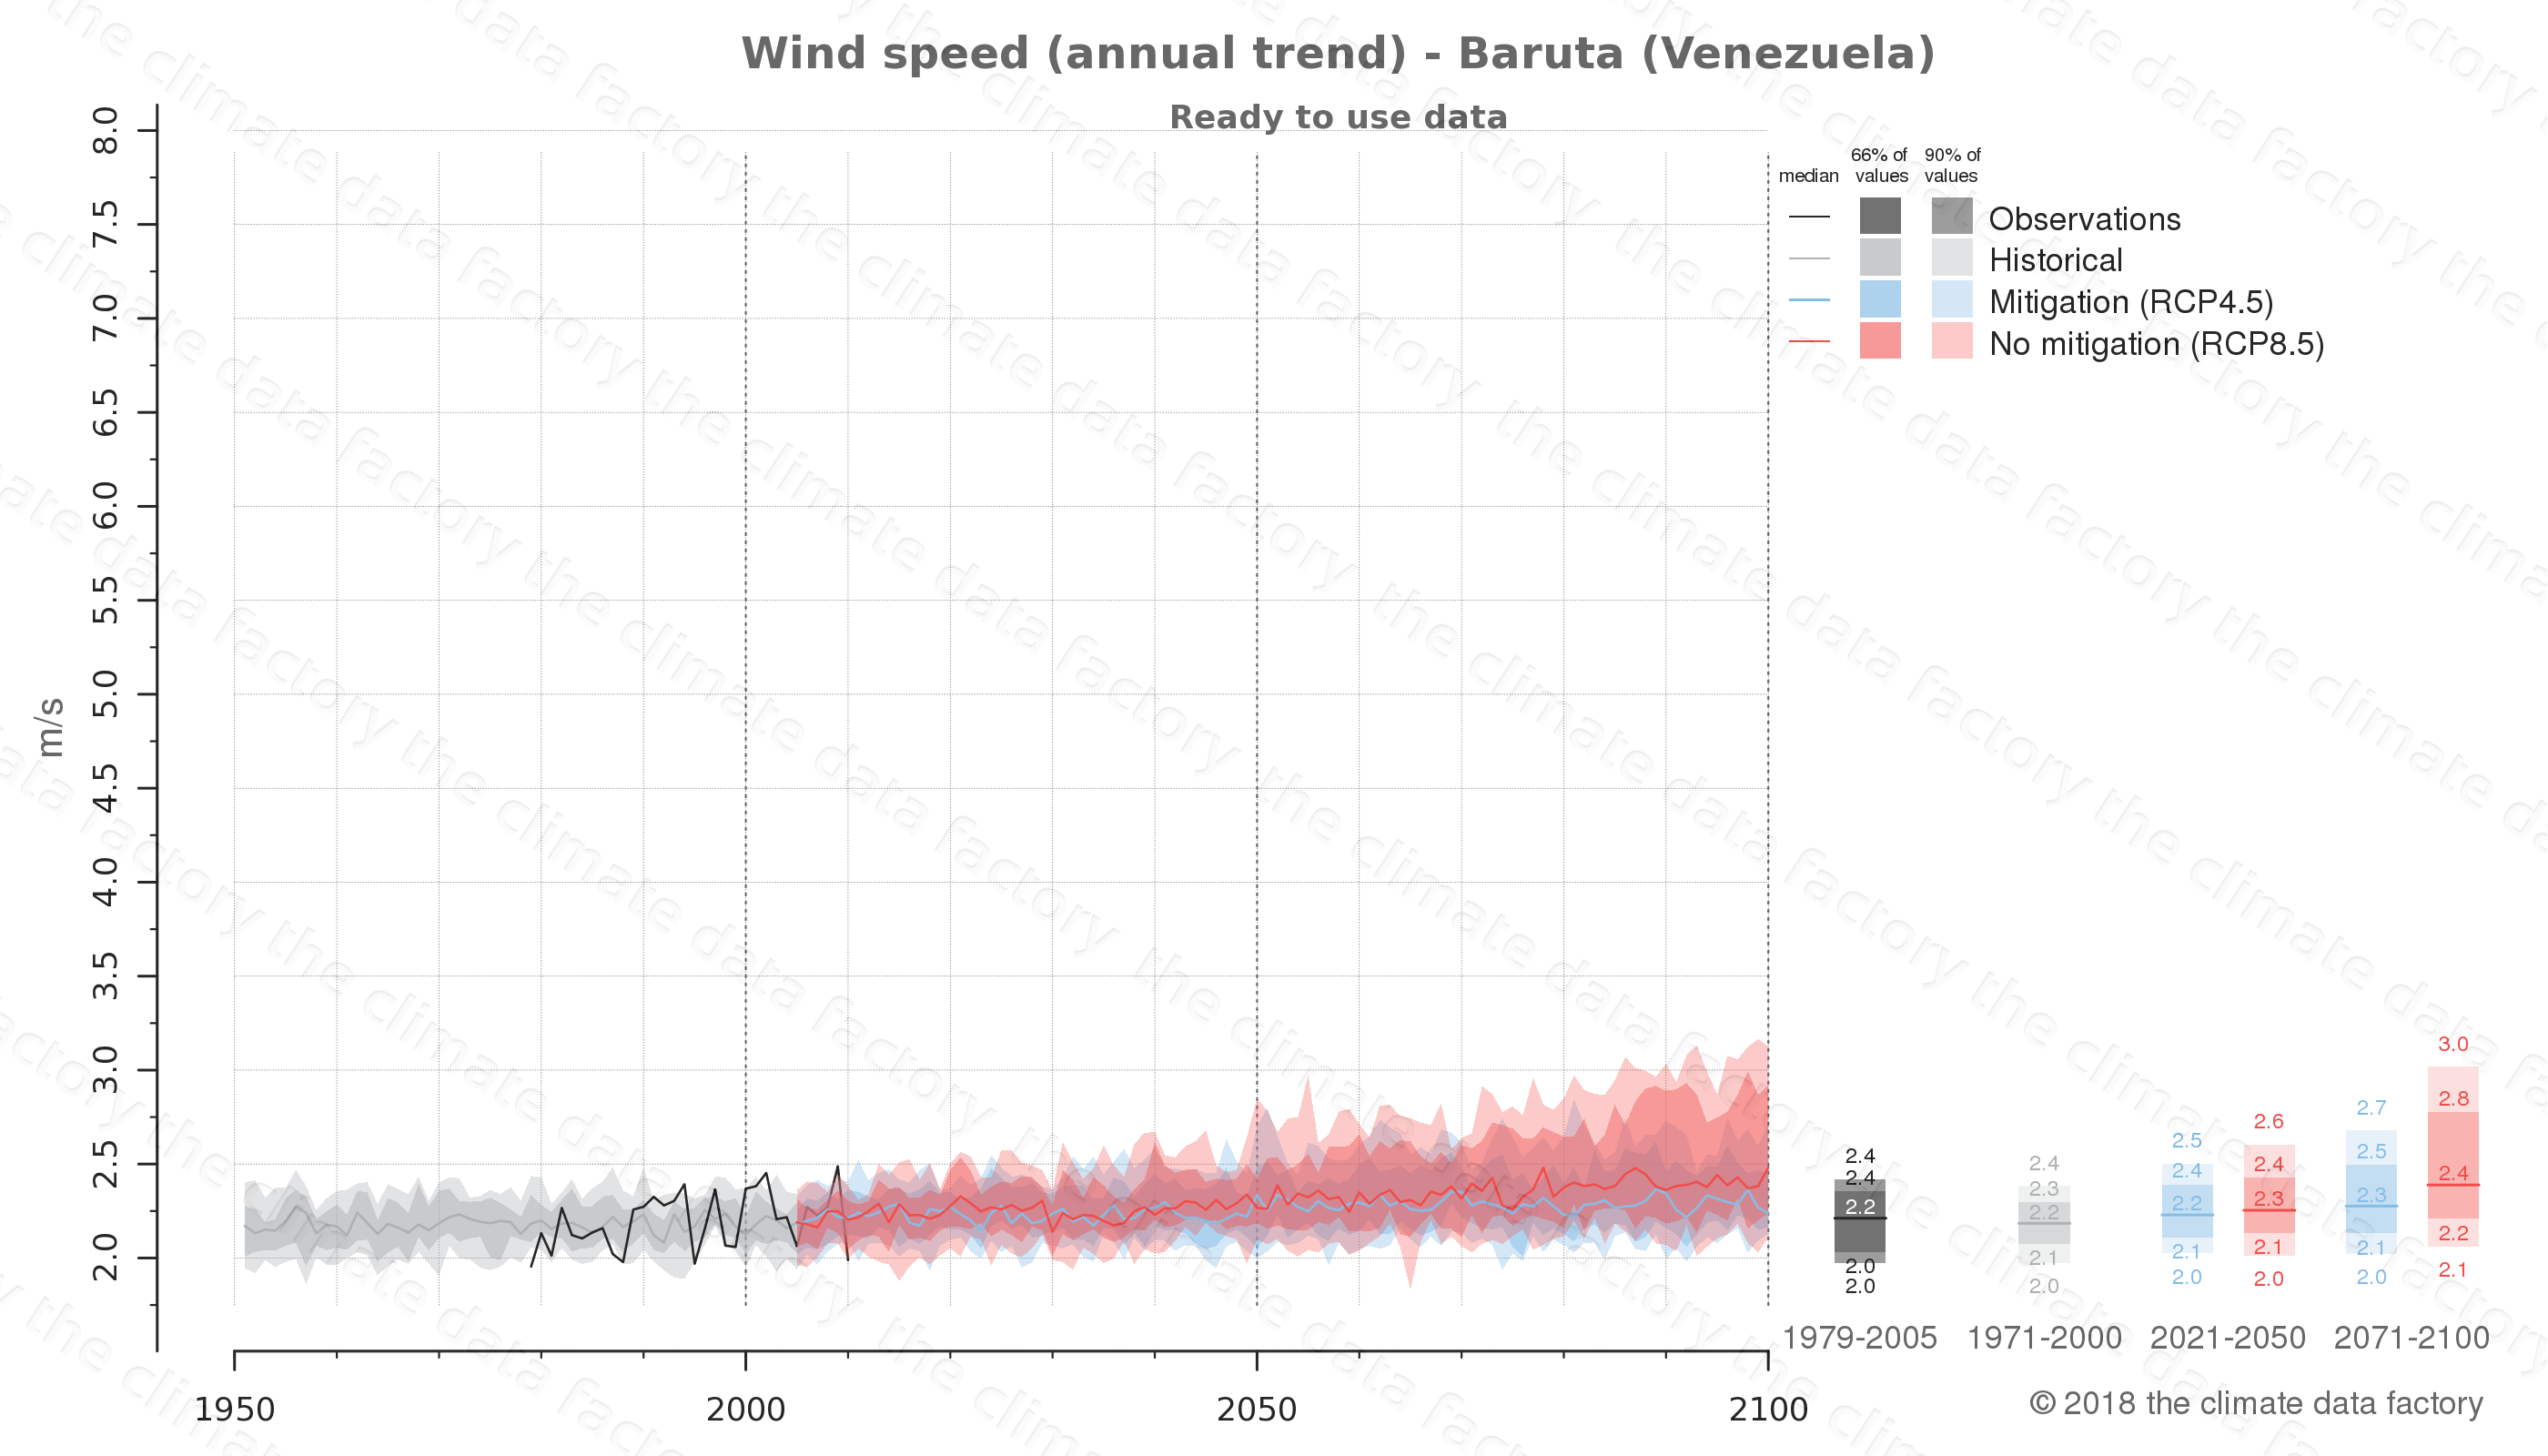 climate change data policy adaptation climate graph city data wind-speed baruta venezuela